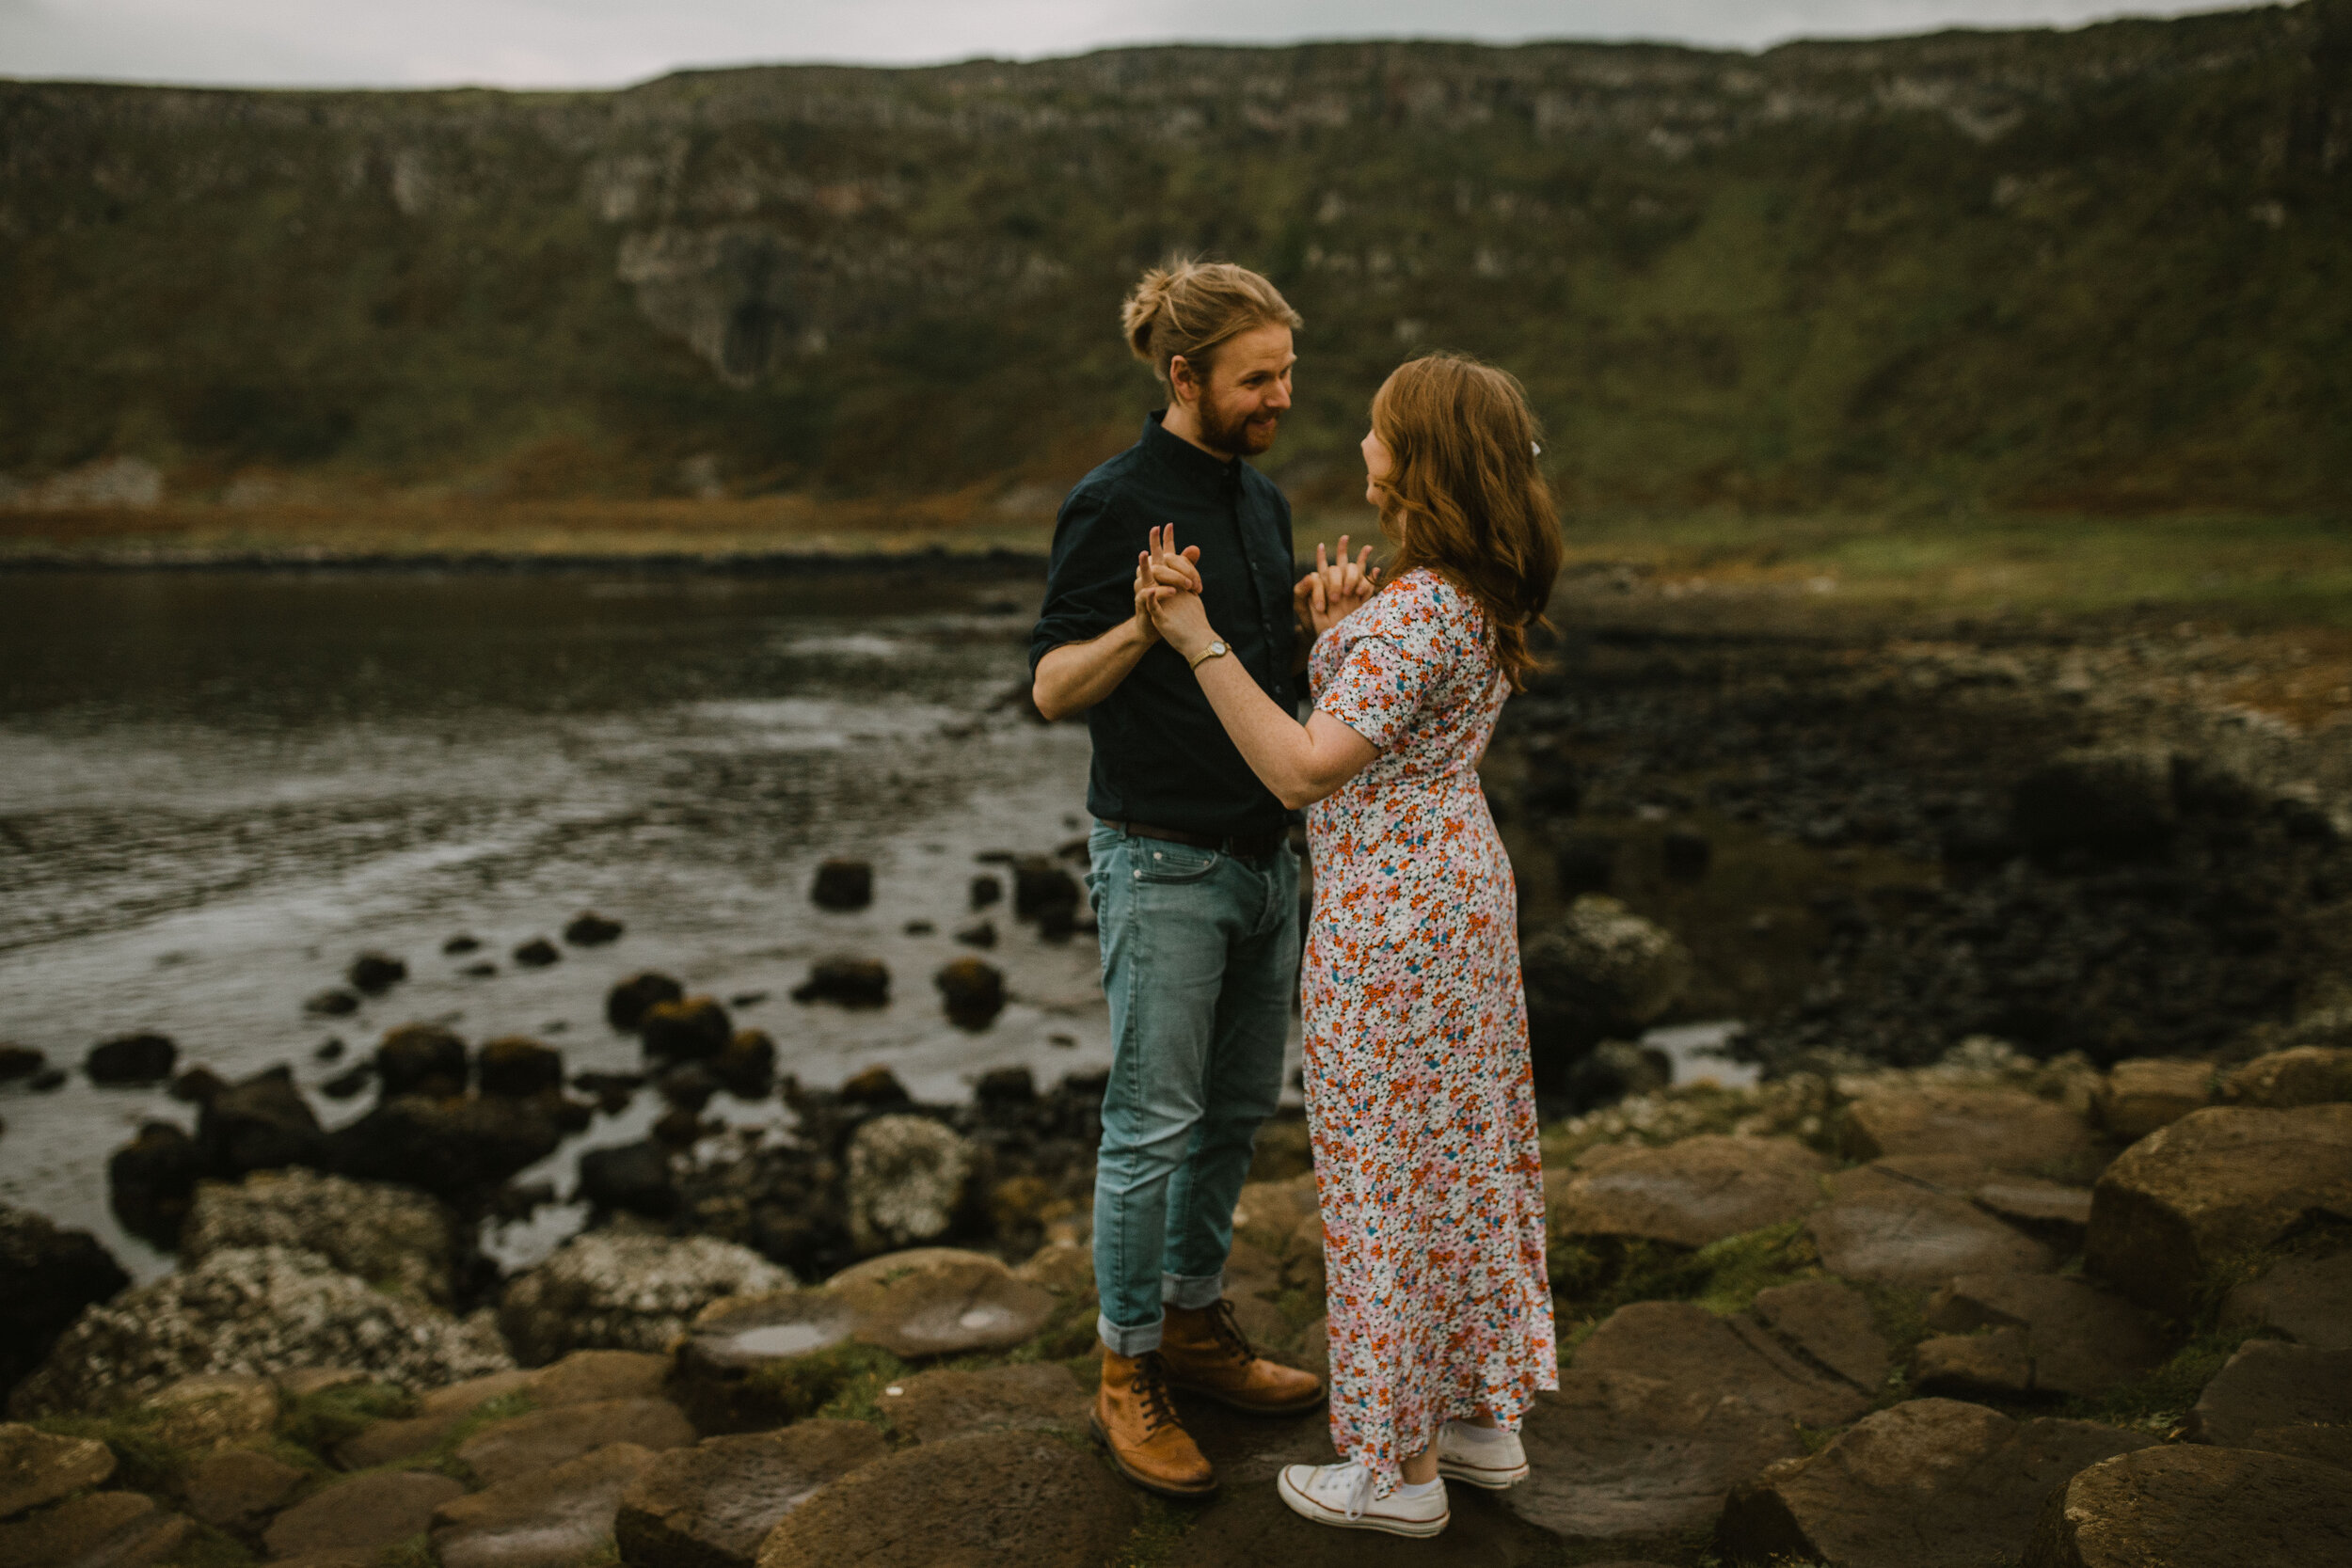 A&S-Giants Causeway-Northern Ireland Wedding Photographer Videographer-95.jpg